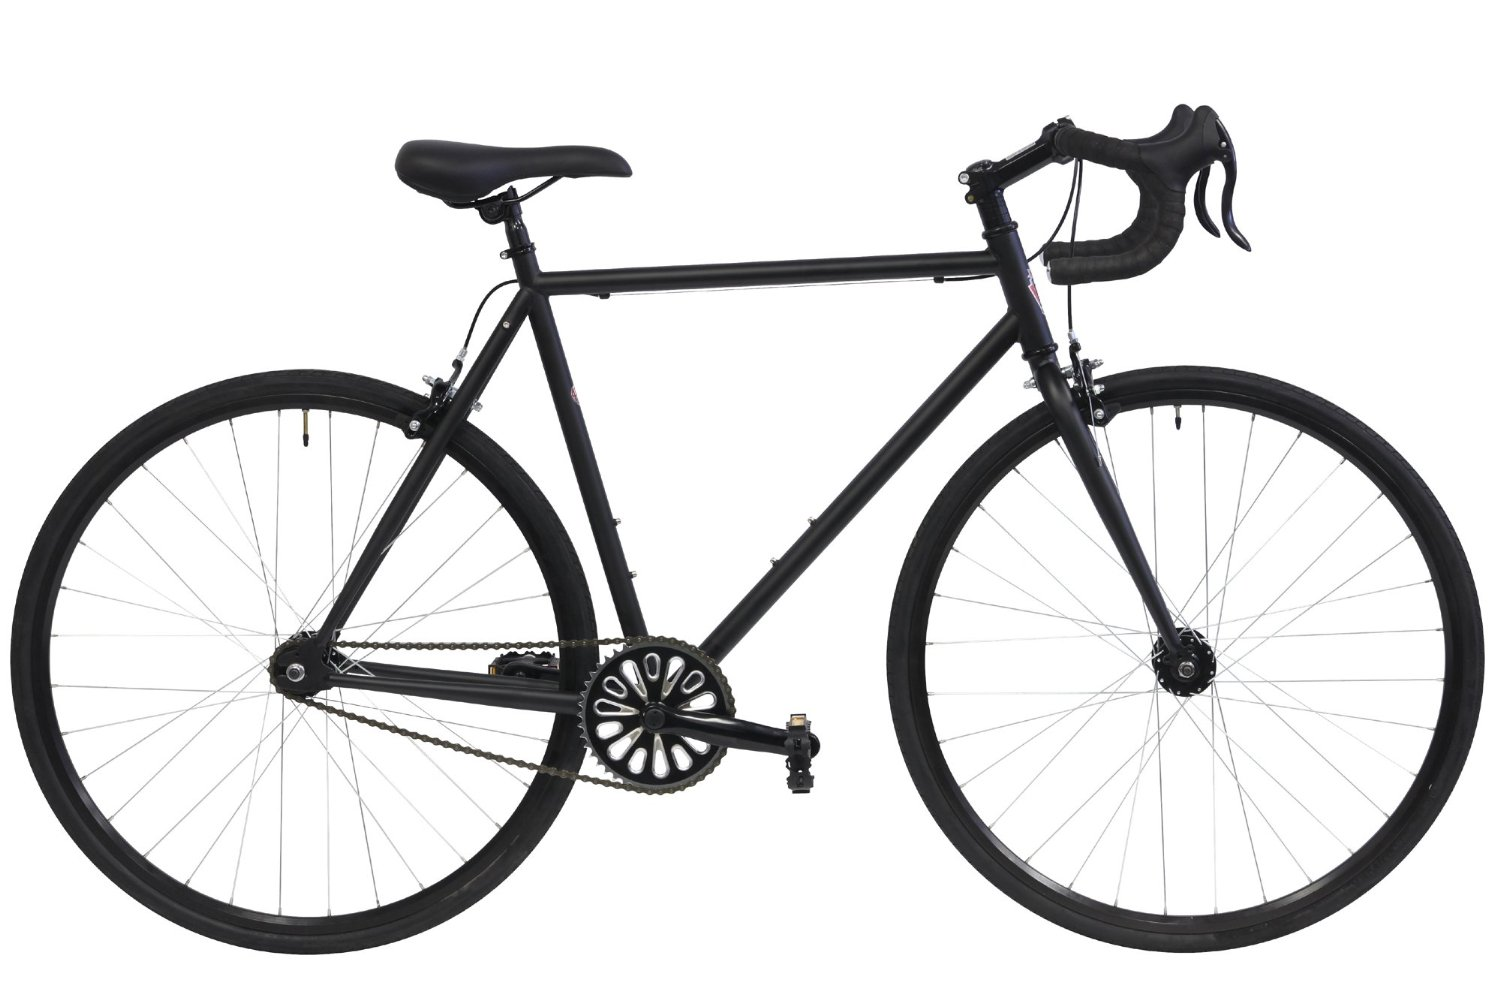 Bikes Dawes Revolver Single Speed / Fixed Gear Road Bike Image